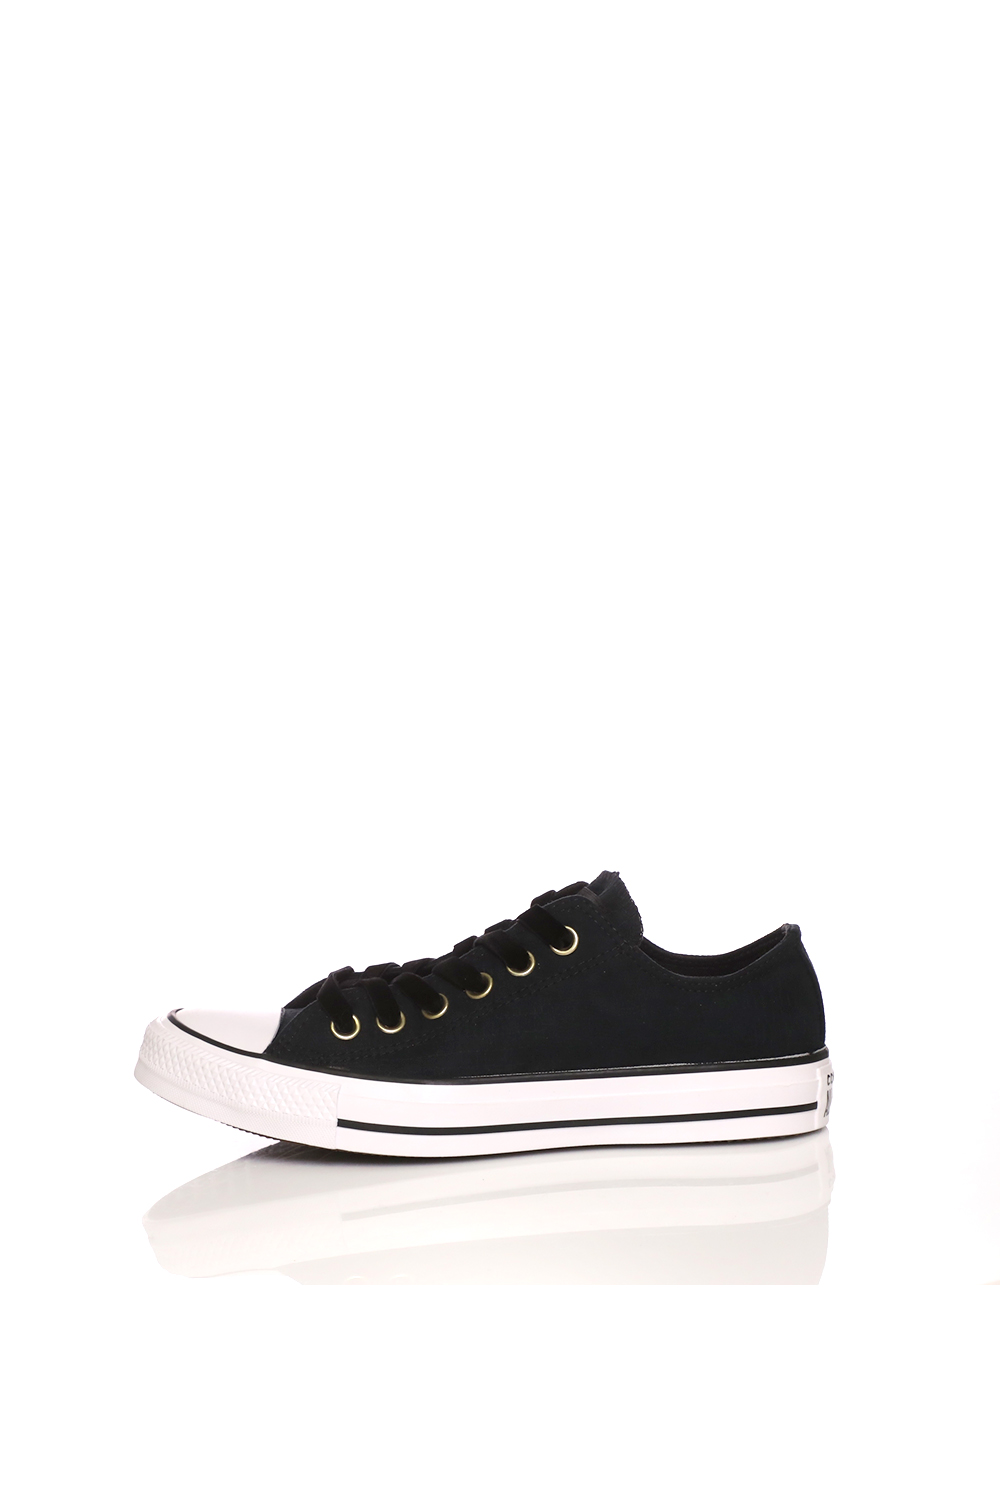 CONVERSE – Γυναικεία sneakers CONVERSE CHUCK TAYLOR ALL STAR μαύρα